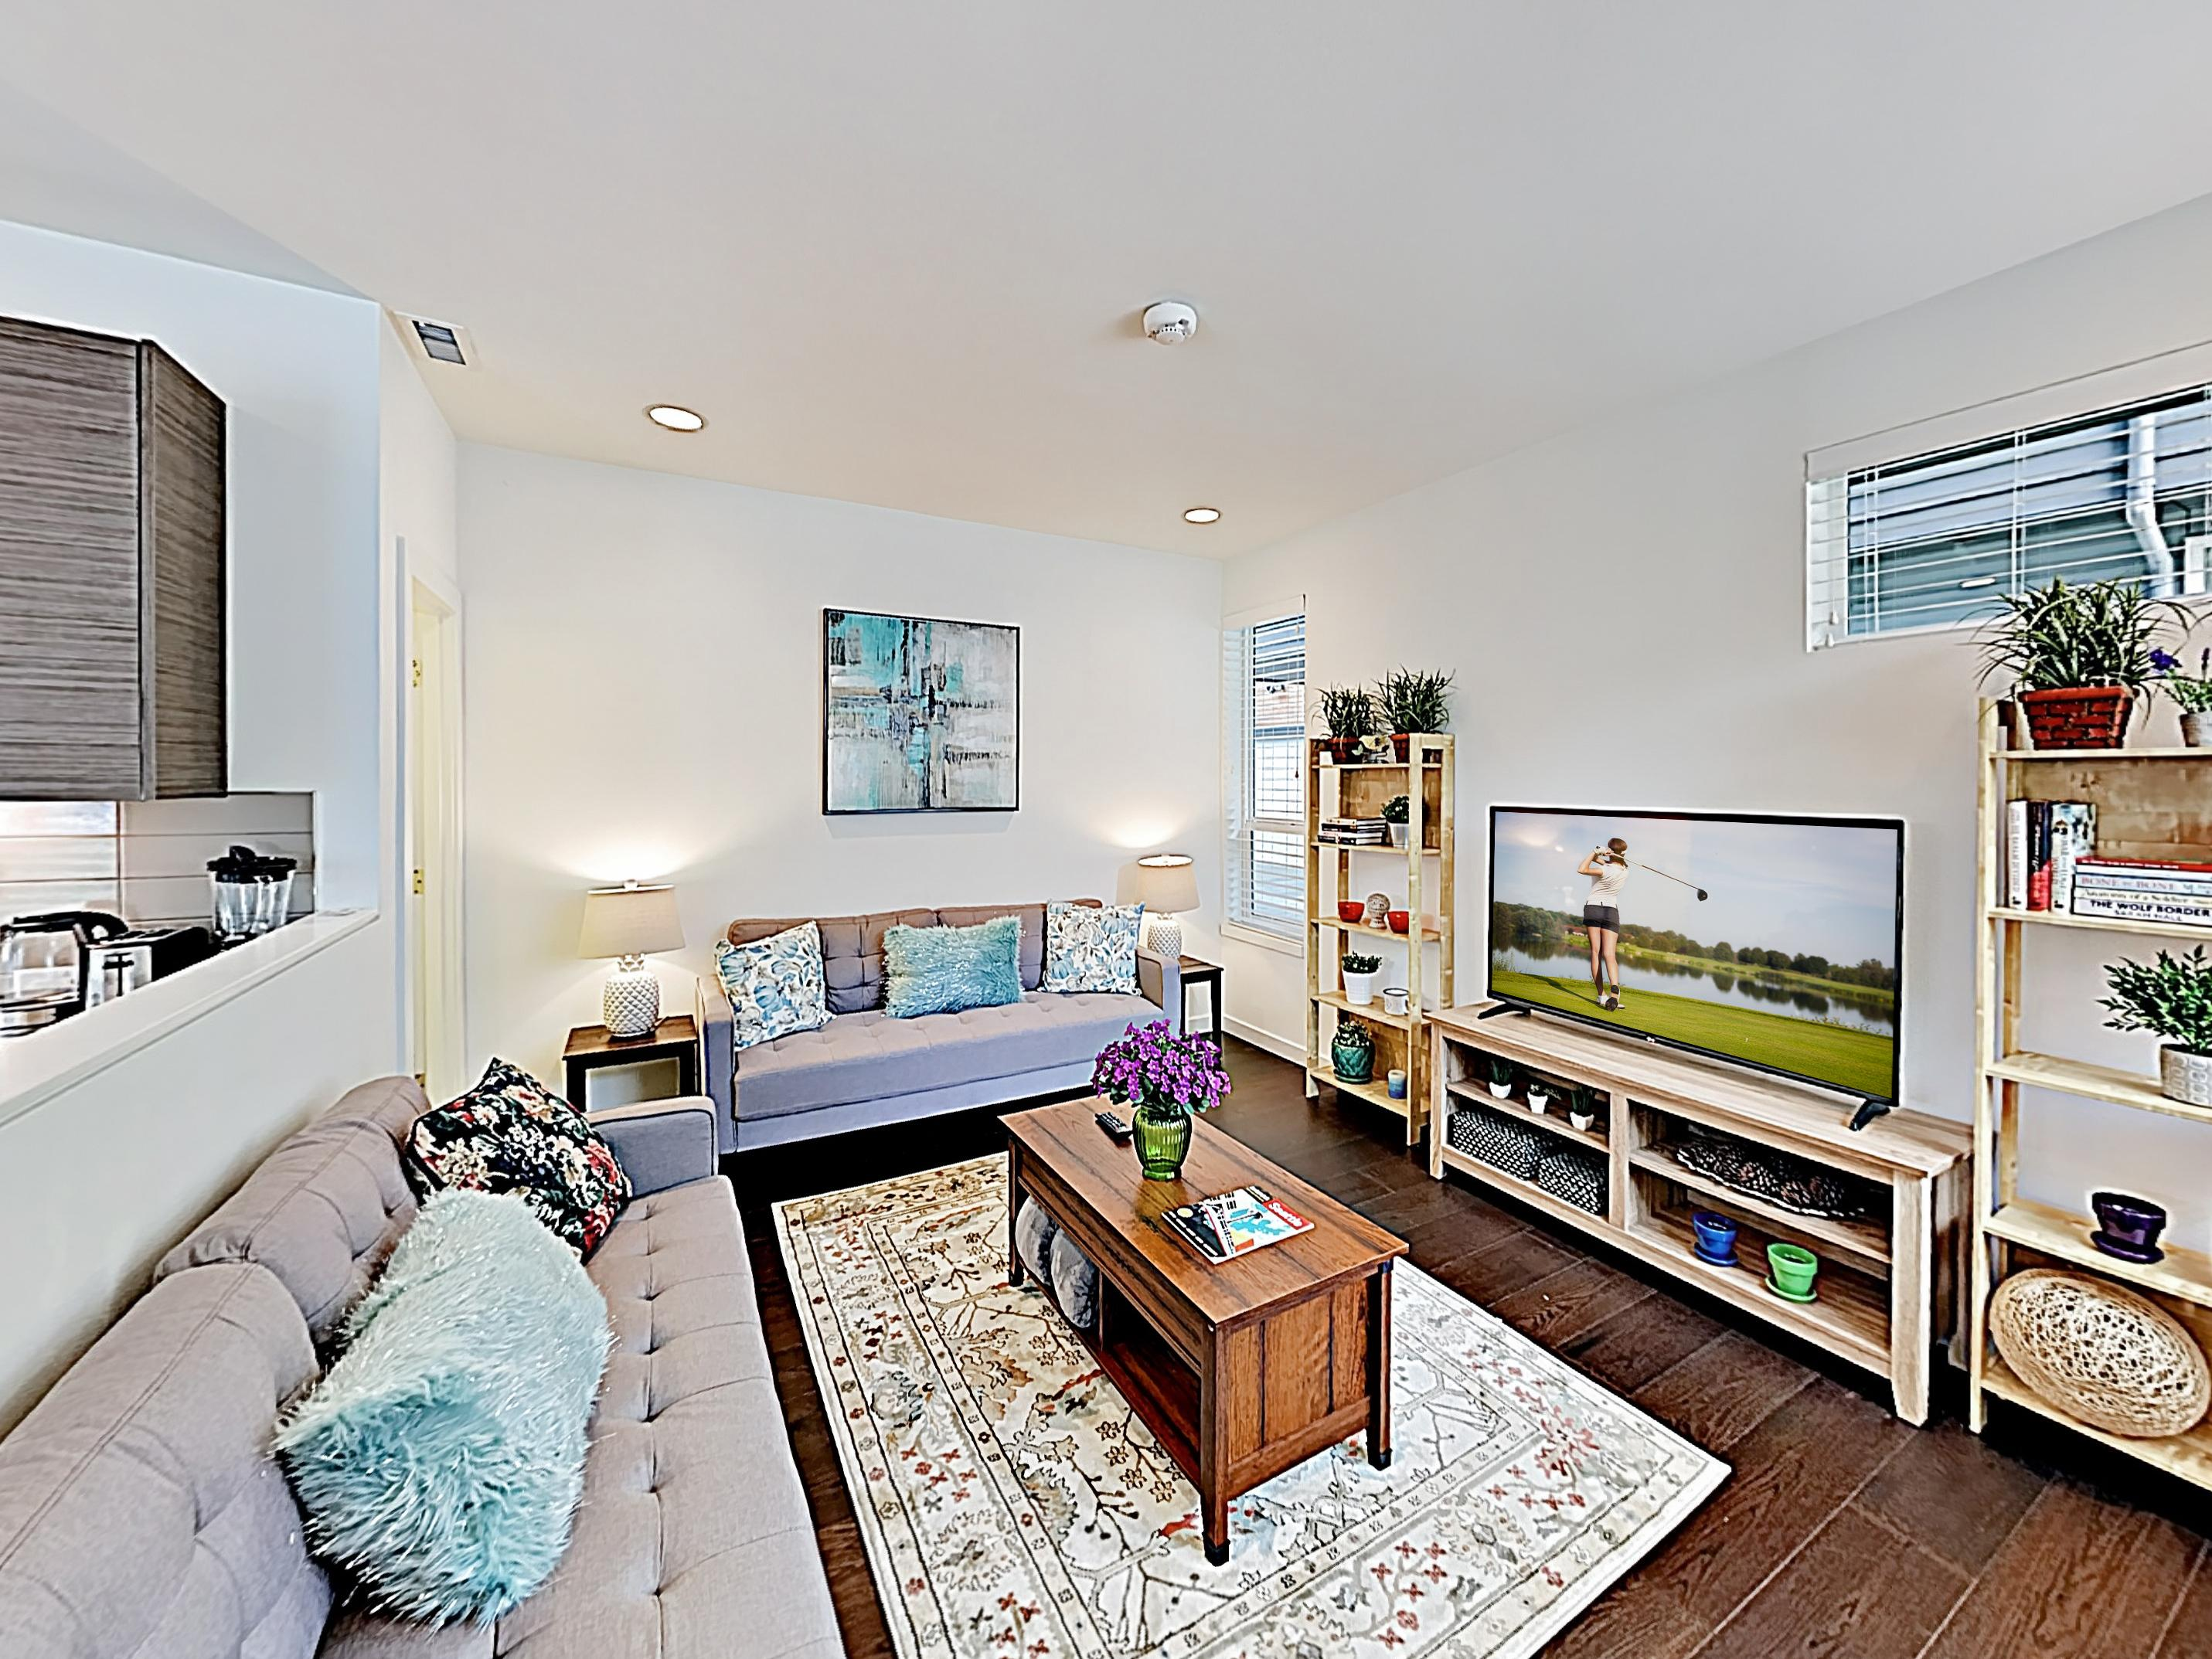 Welcome to Seattle! This townhome is professionally managed by TurnKey Vacation Rentals.